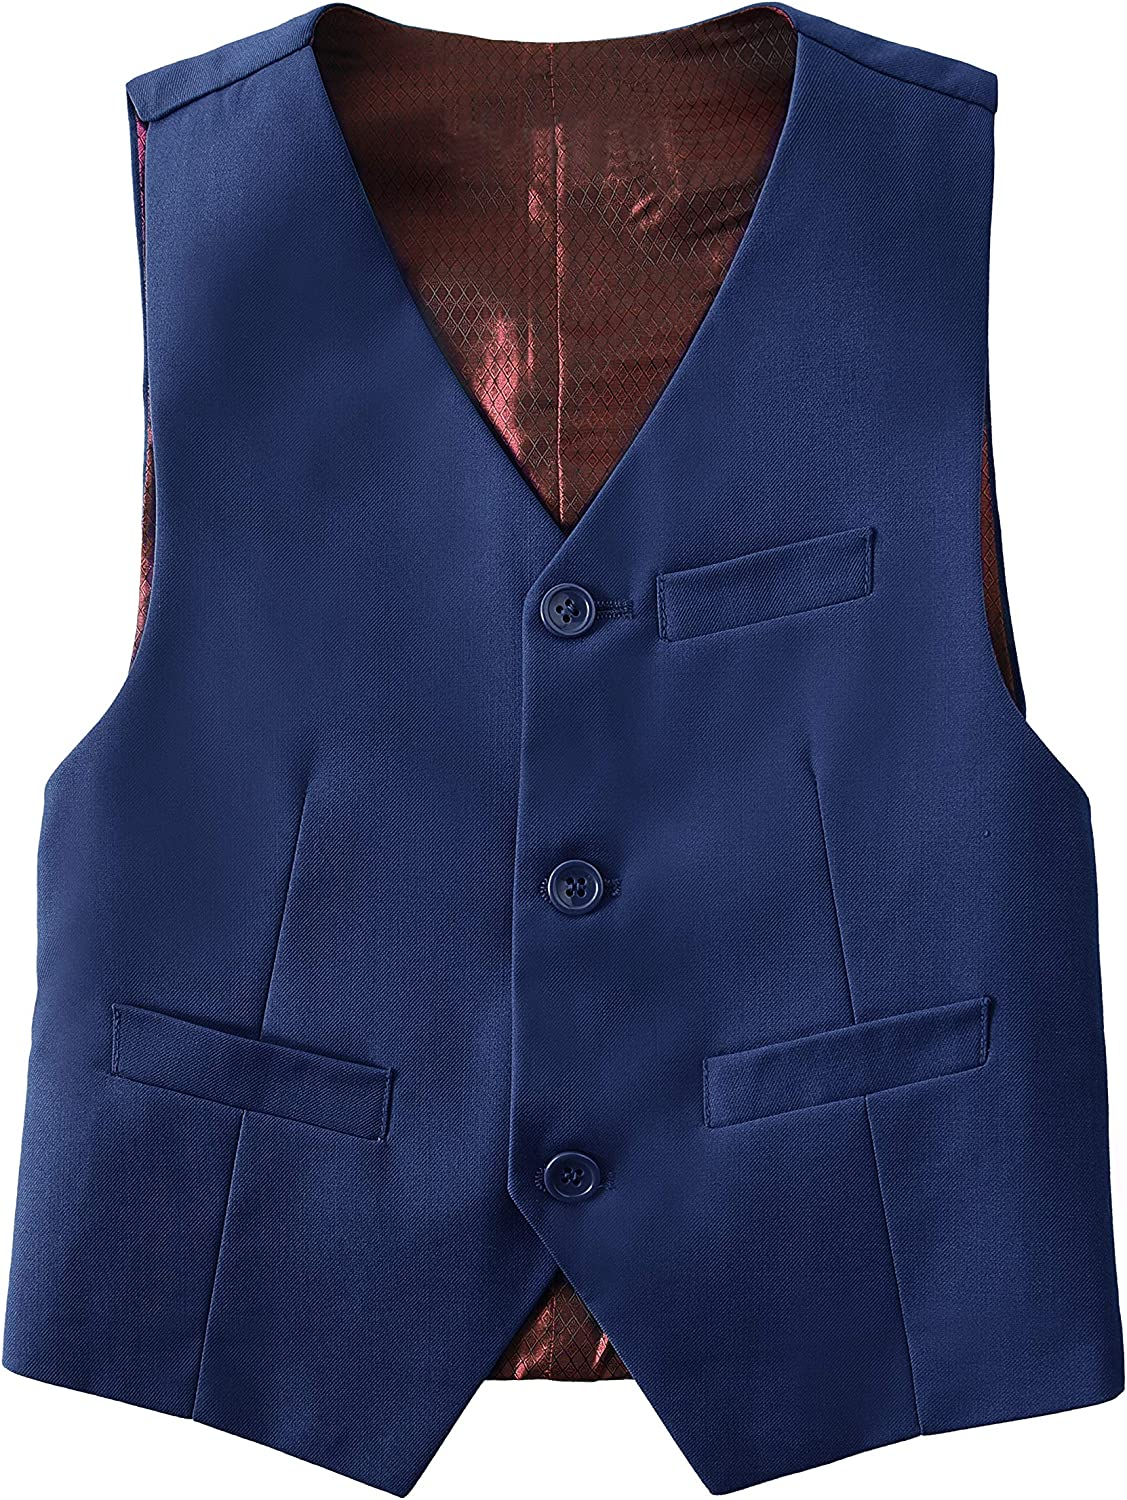 Plsily Boys Spring new work one after another Blazer Formal Dress Jacket Boy Suits Wedding Max 68% OFF